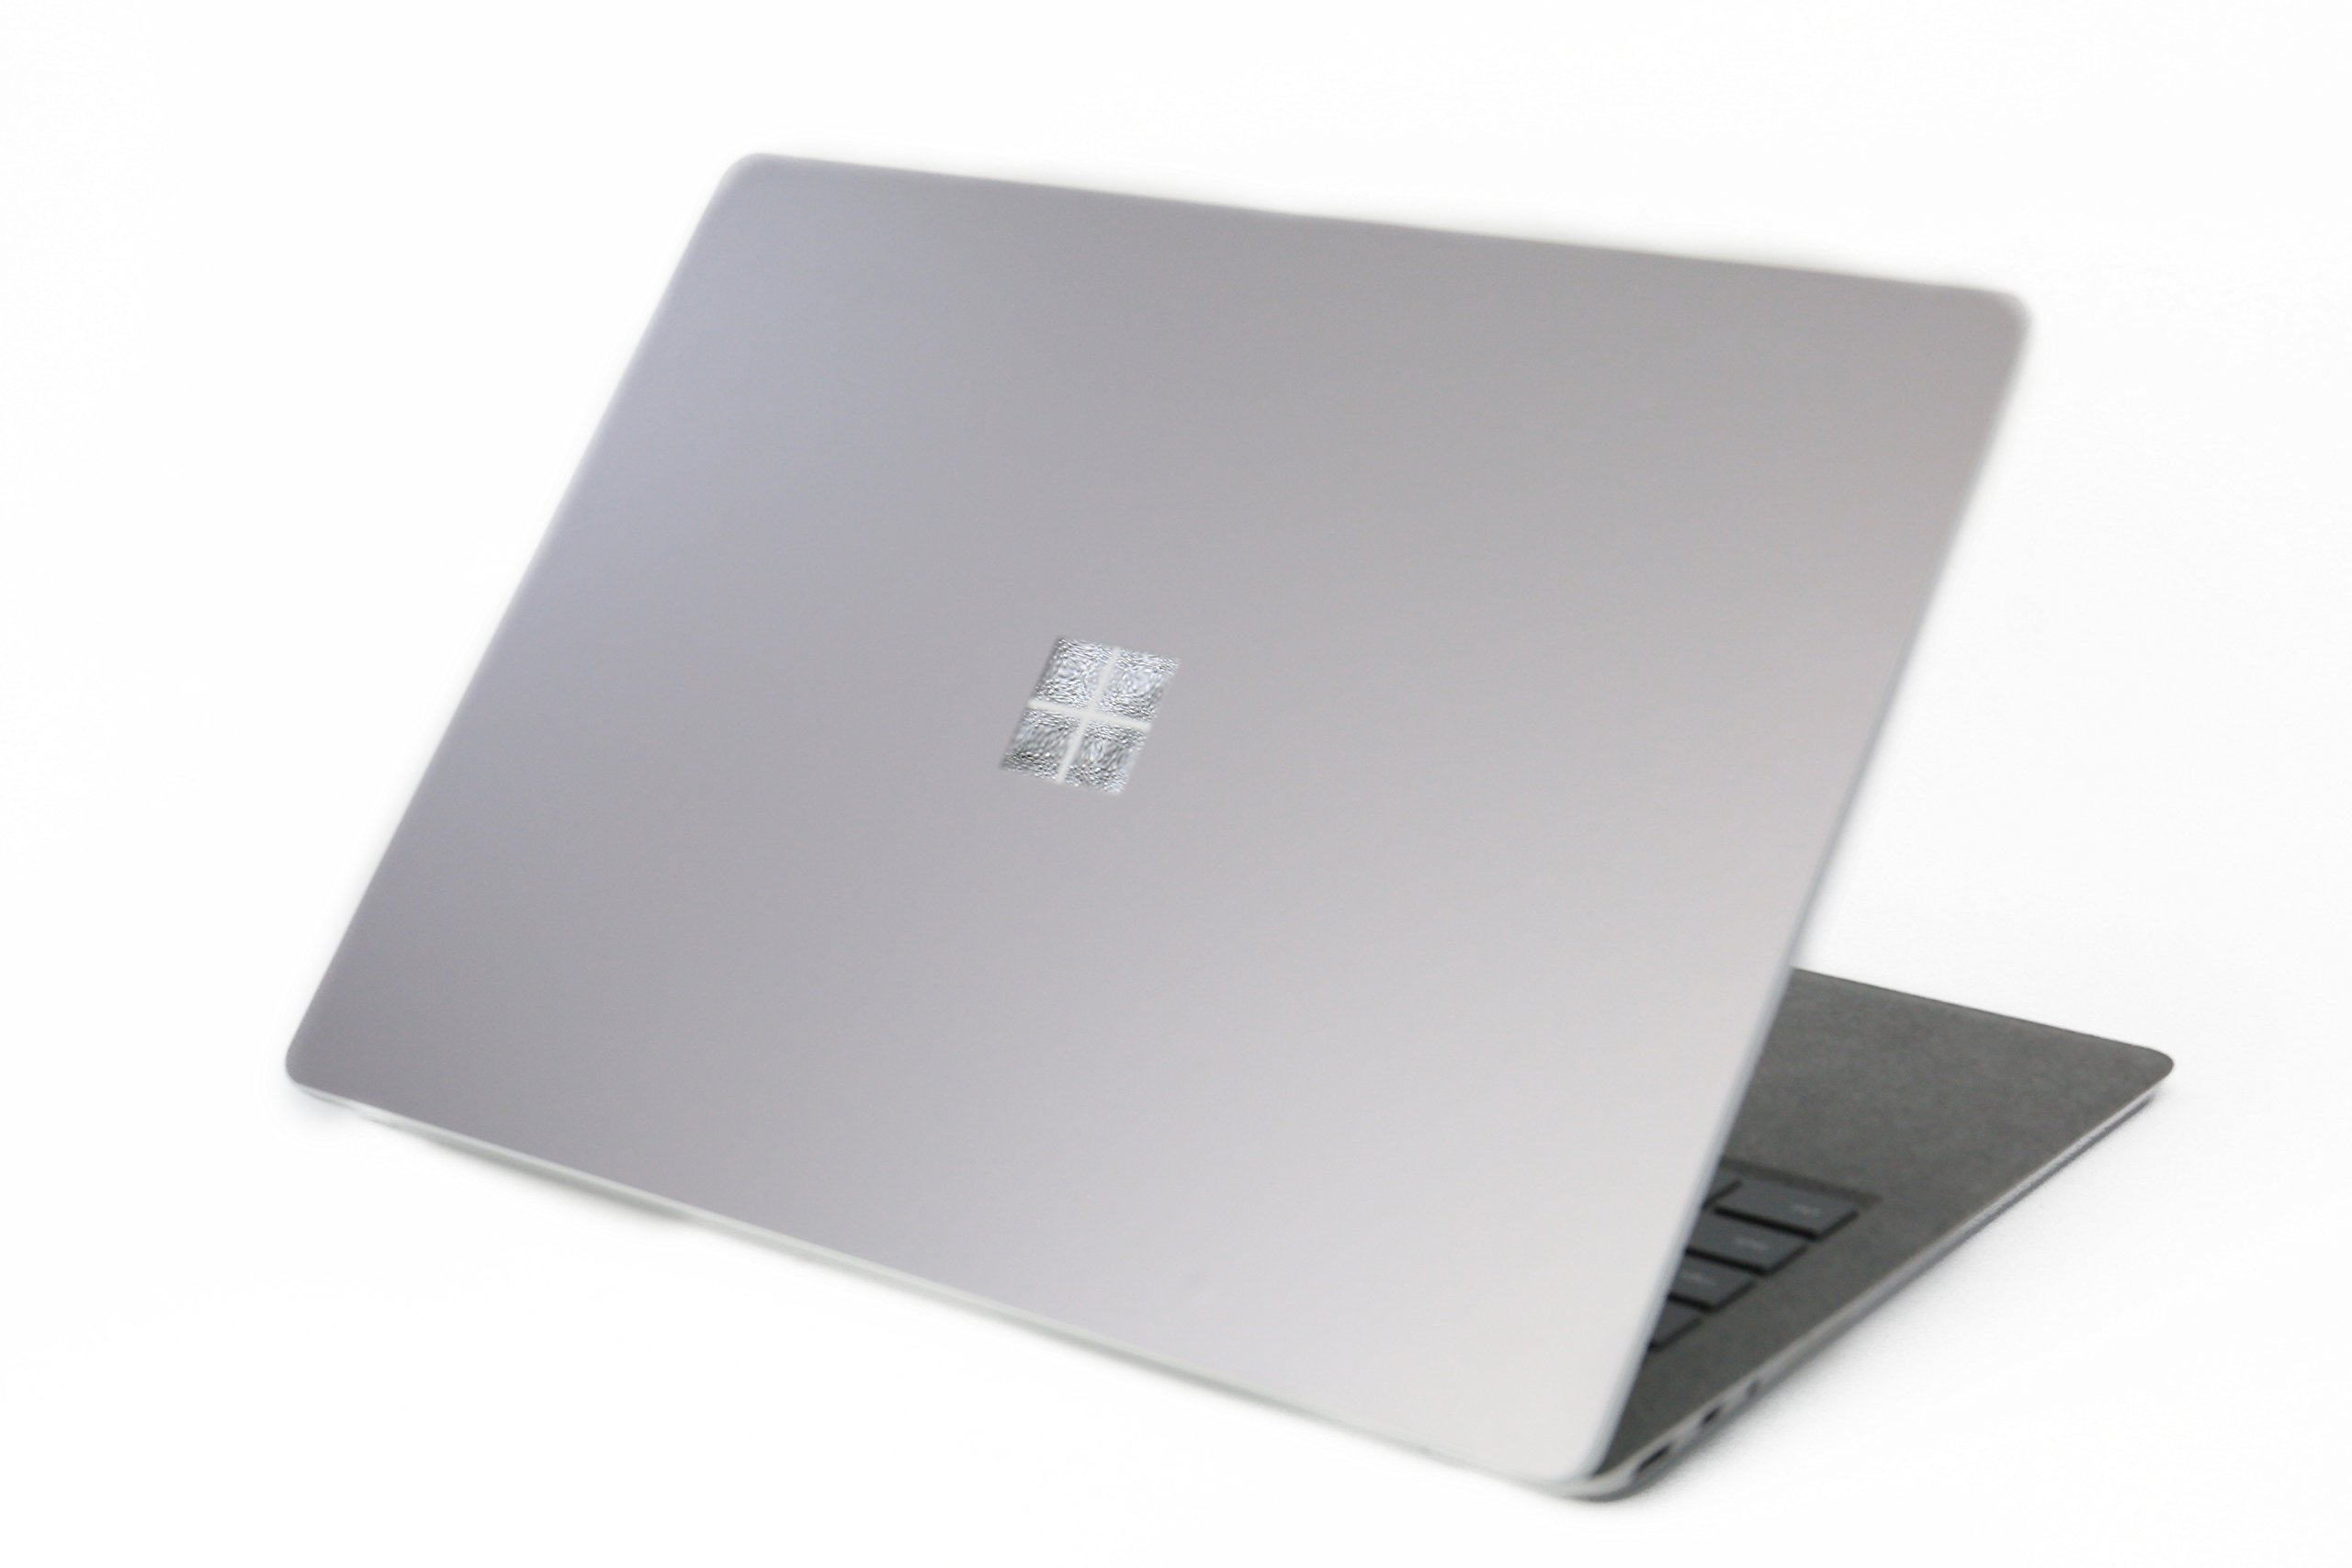 Leze - Surface Laptop Body Cover Protective Stickers Skins for Microsoft Surface Laptop - Space Grey